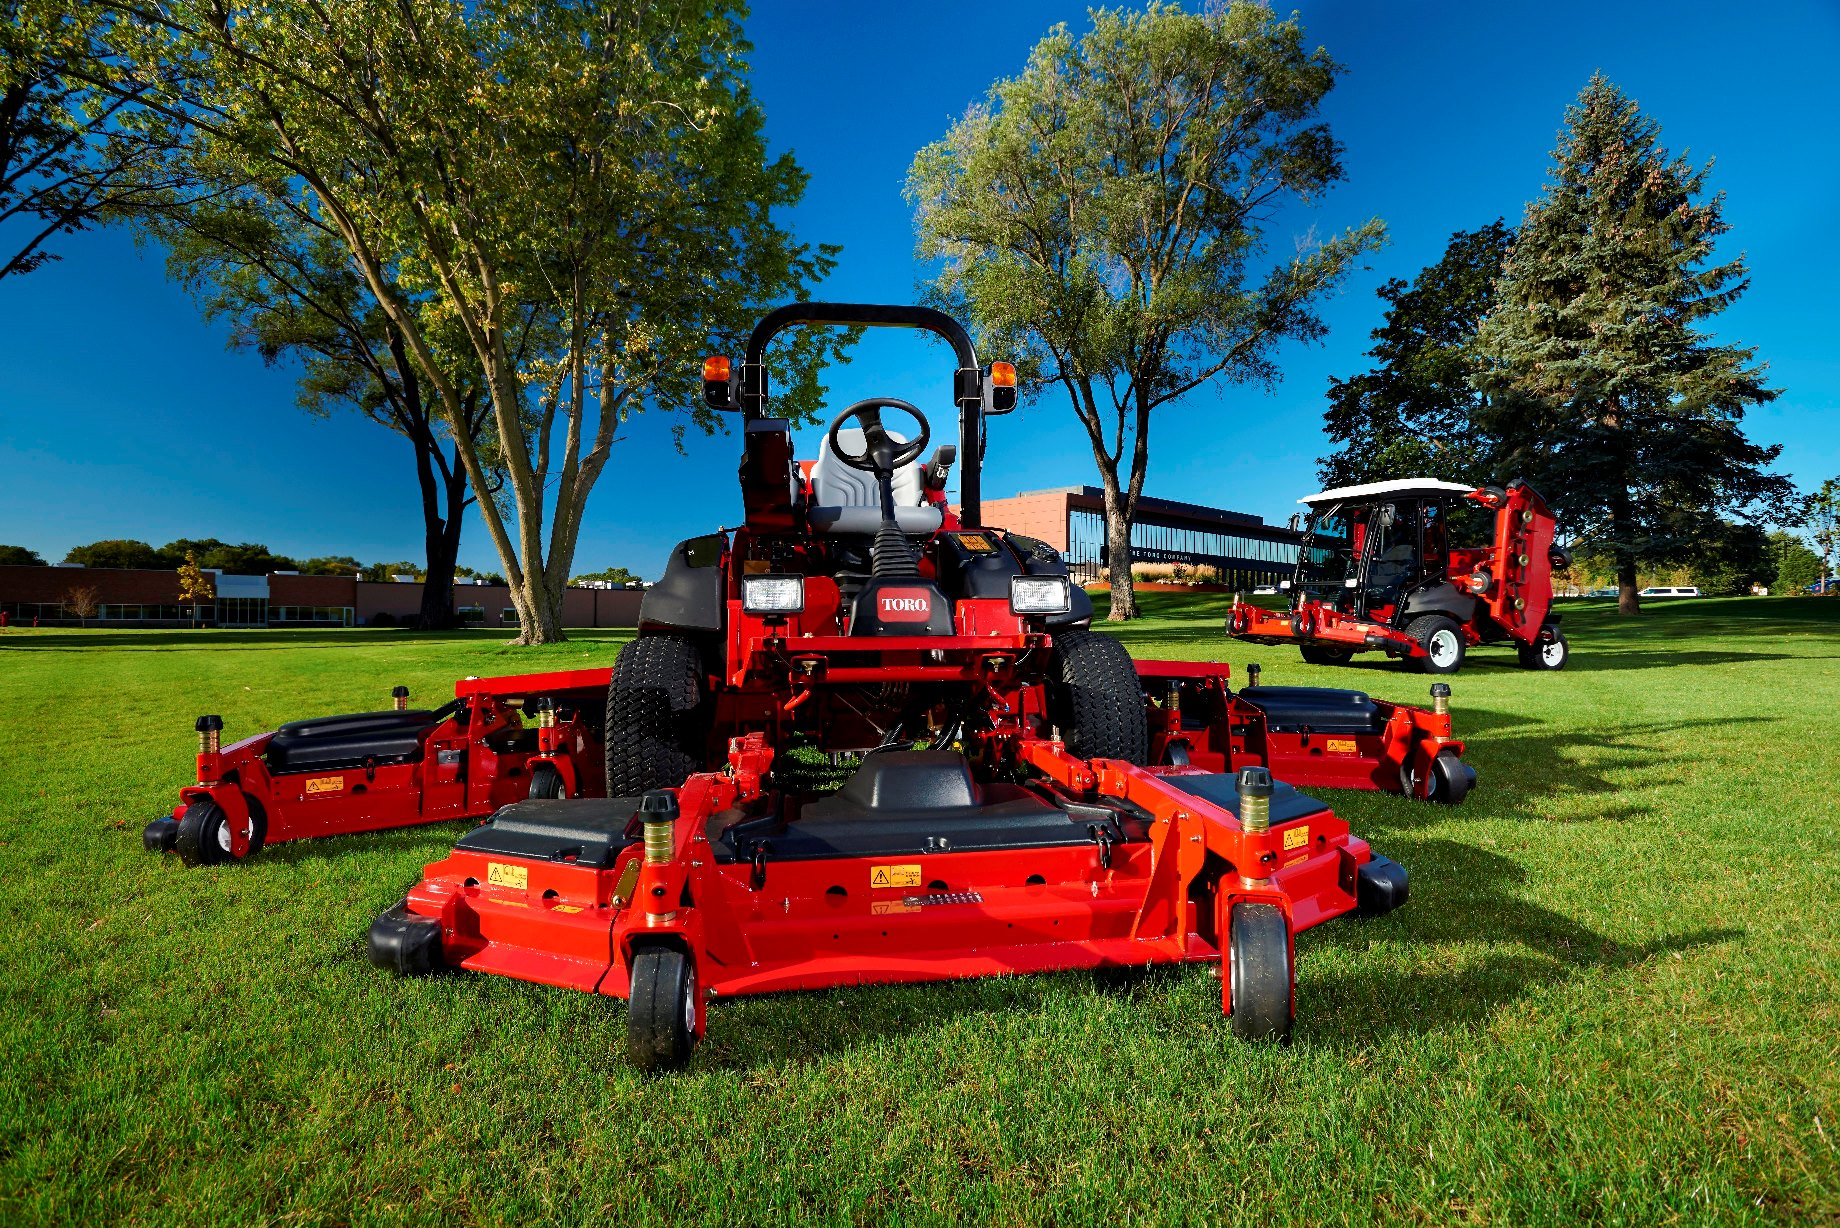 Groundsmaster® 5900 Tier 4 - redefining productivity